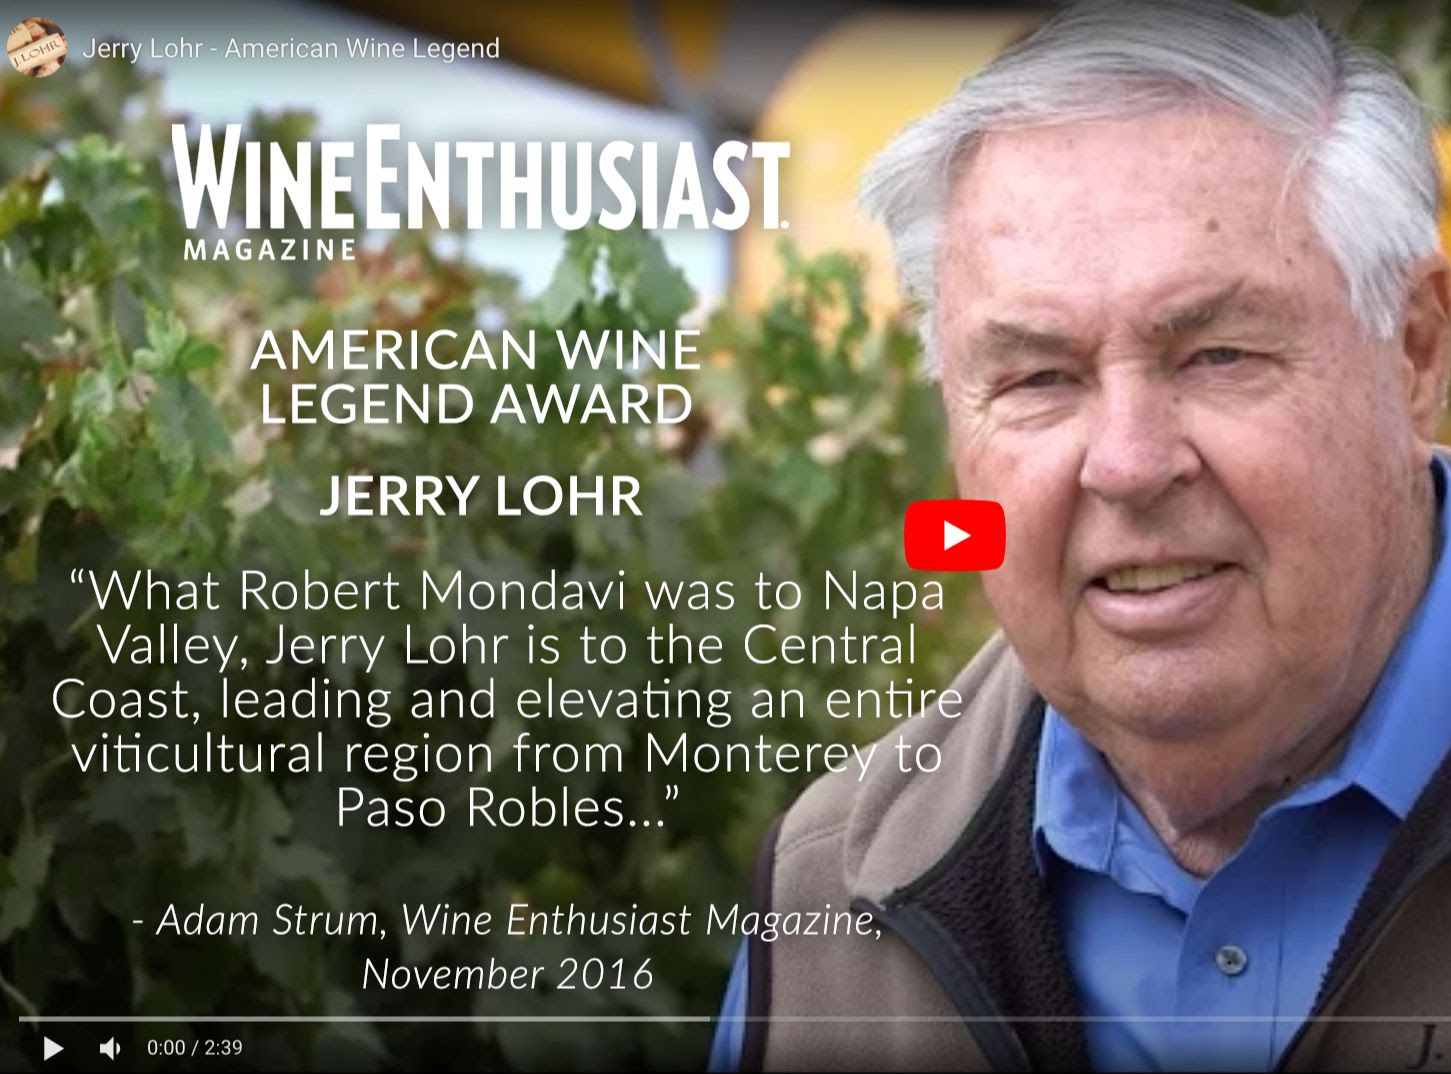 """Photo of Jerry Lohr with the title: """"American Wine Legend Award - Jerry Lohr"""" with a quote from Adam Strum, Wine Enthusiast Magazine, November 2018, """"What Robert Mondavi was to Napa Valley, Jerry Lohr is to the Central Coast, leading and elevating an entire viticultural region from Monterey to Paso Robles..."""""""